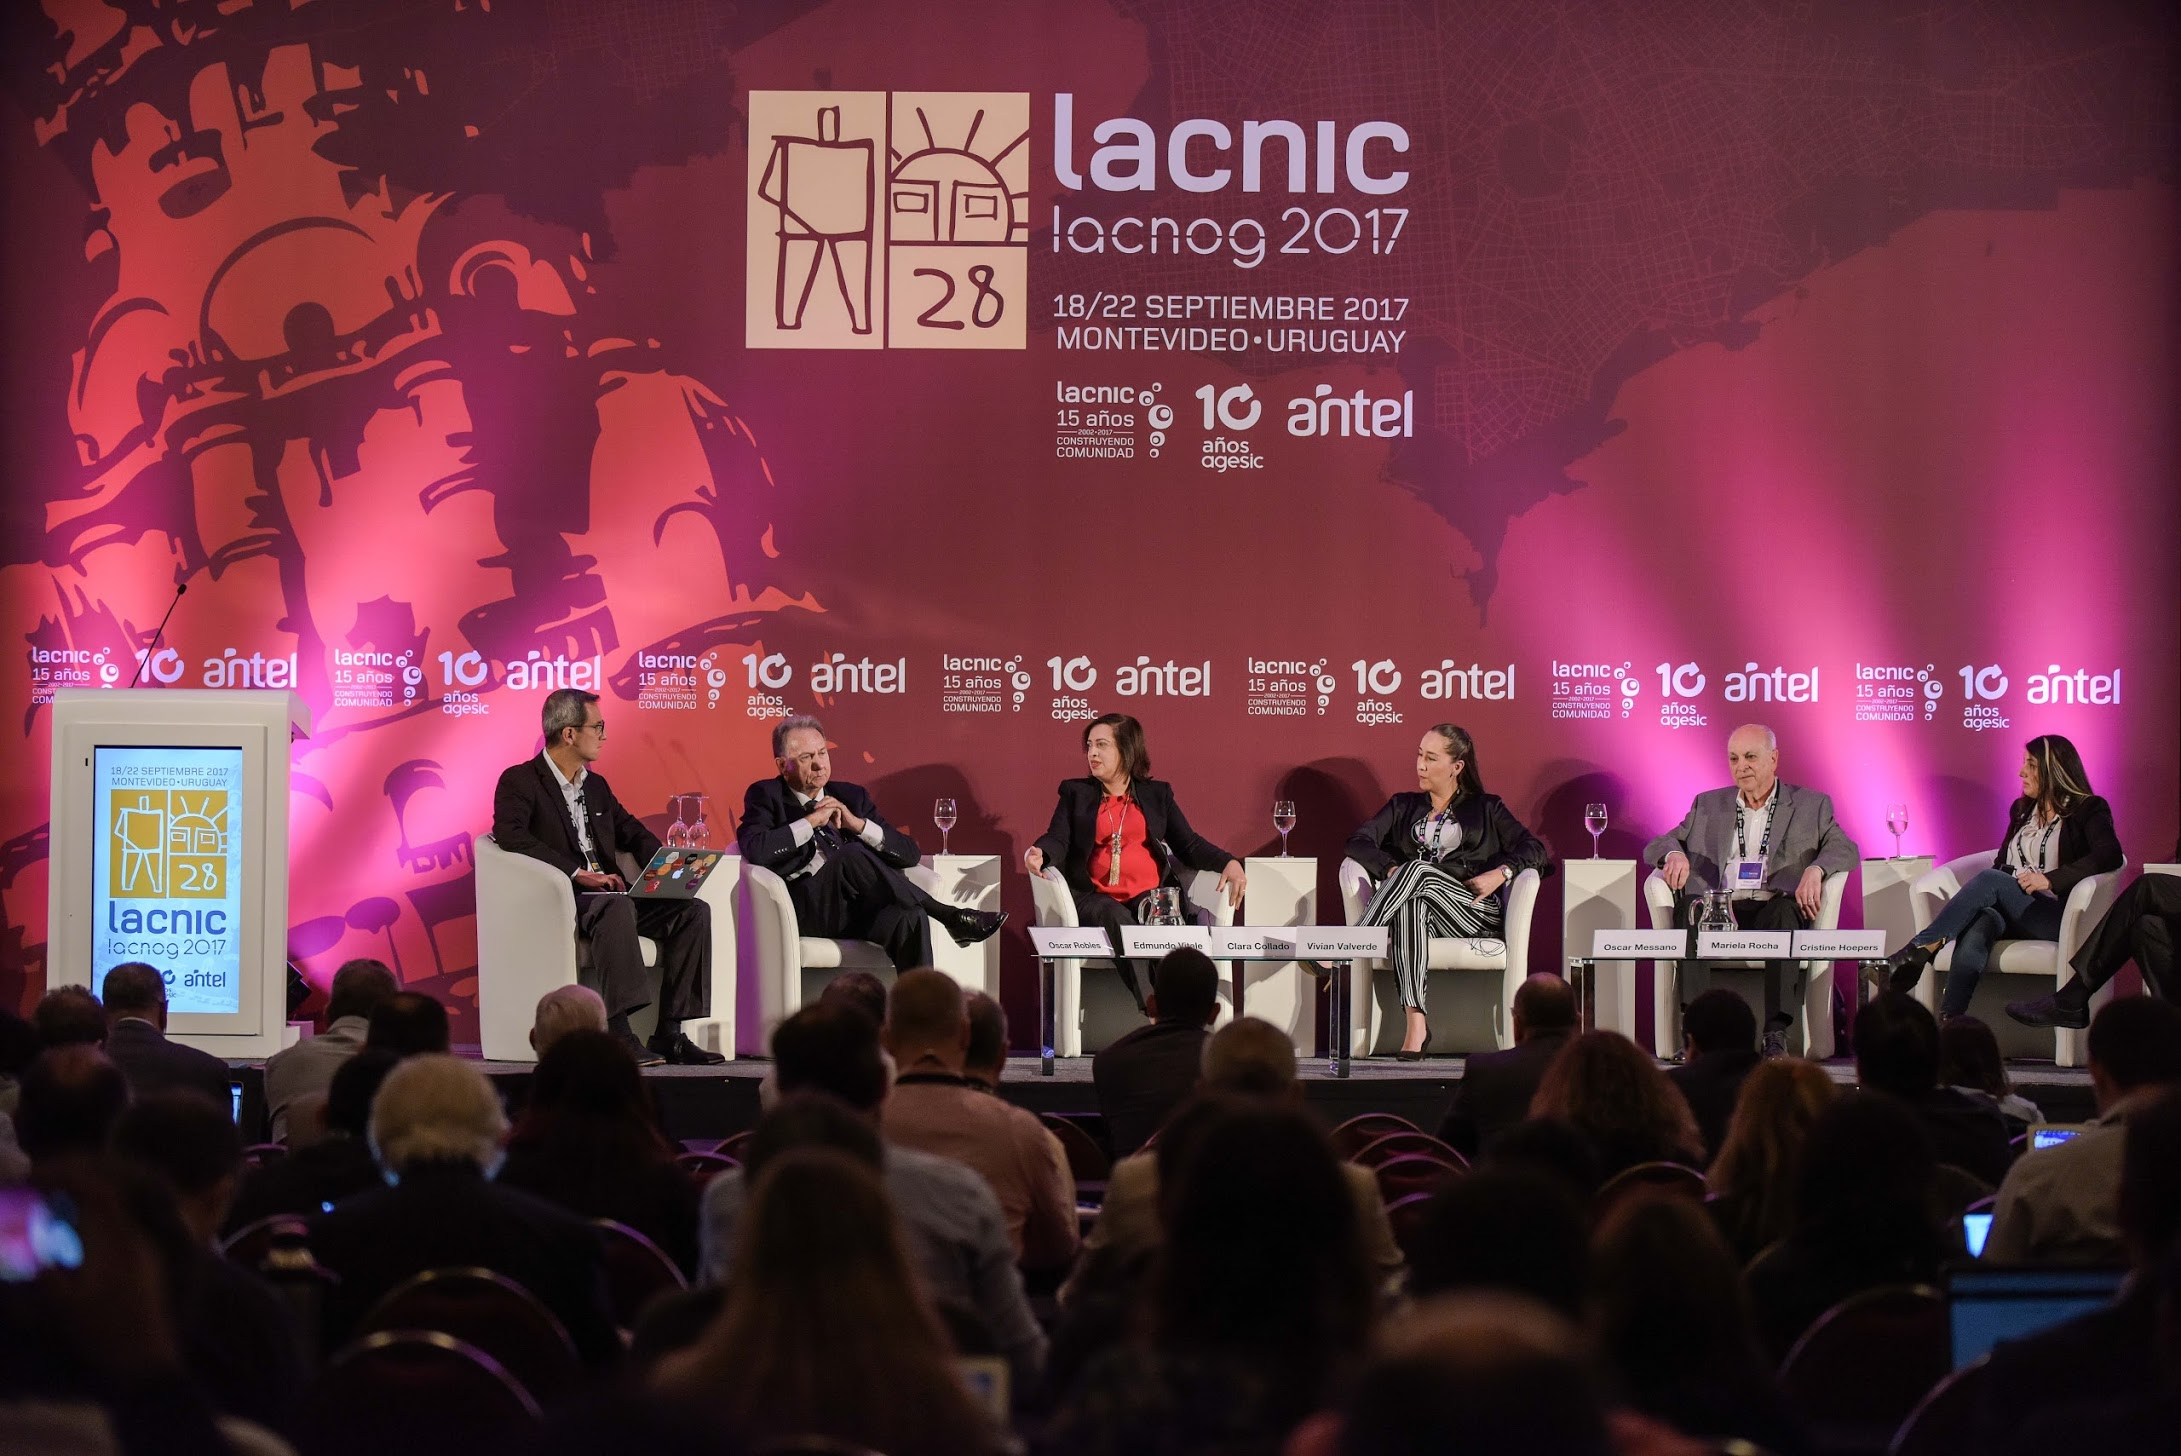 Lacnic Newsletter